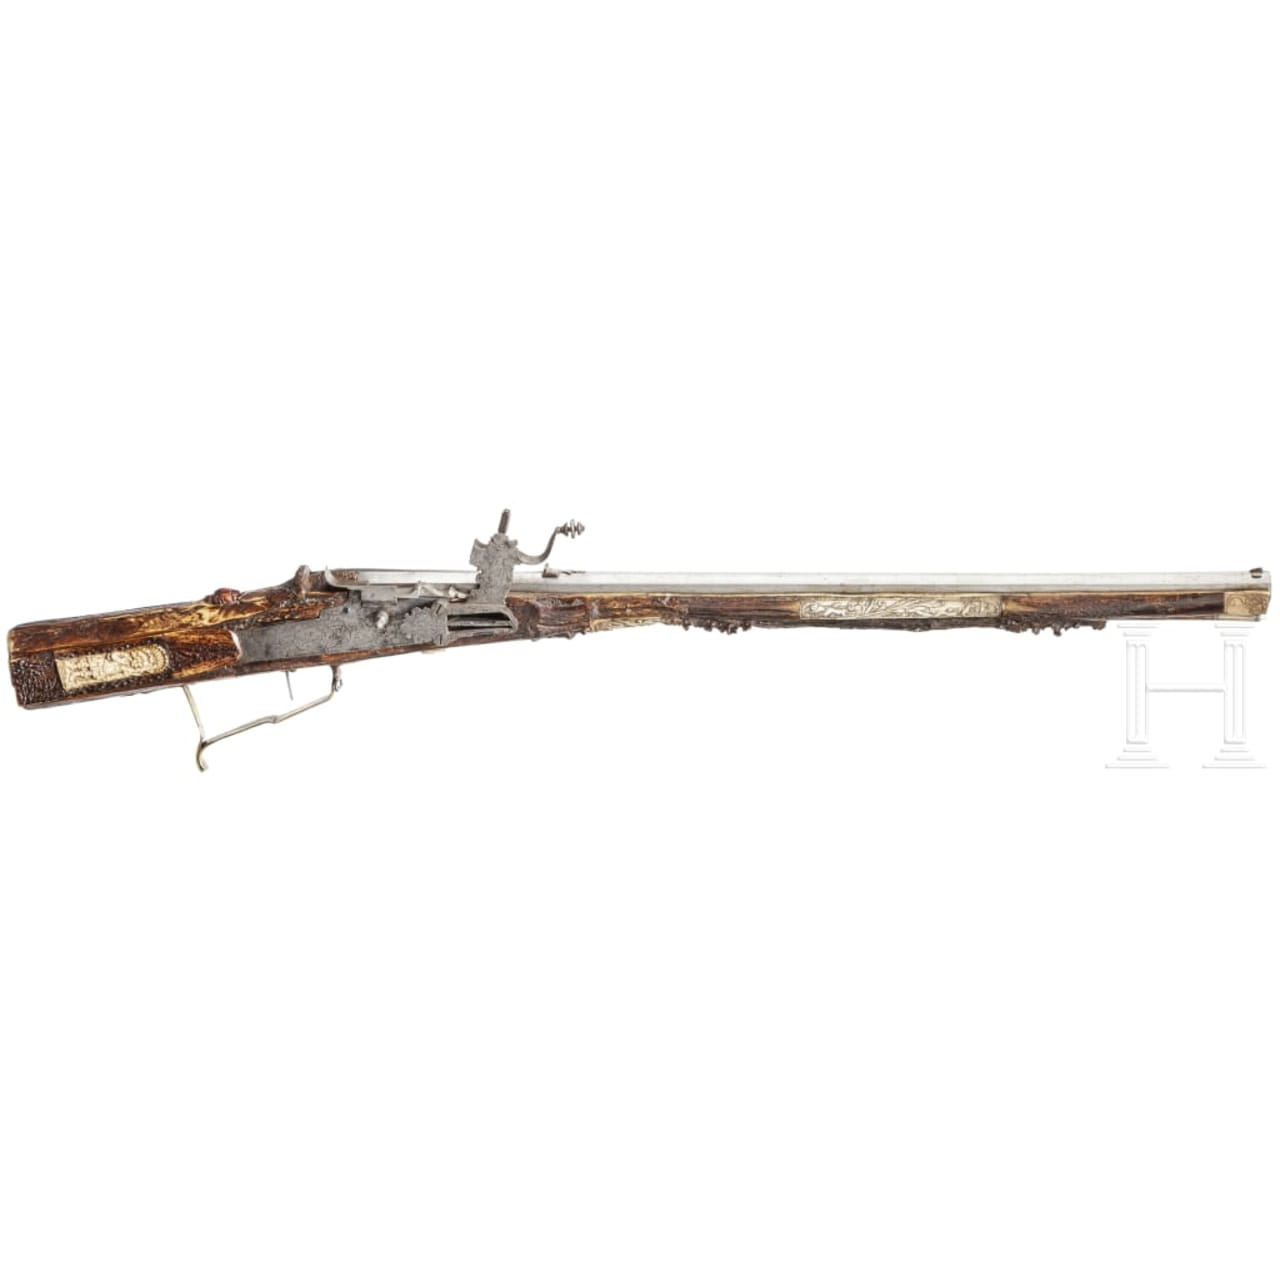 A wheellock rifle with staghorn stock, a historicism reproduction composed of original parts